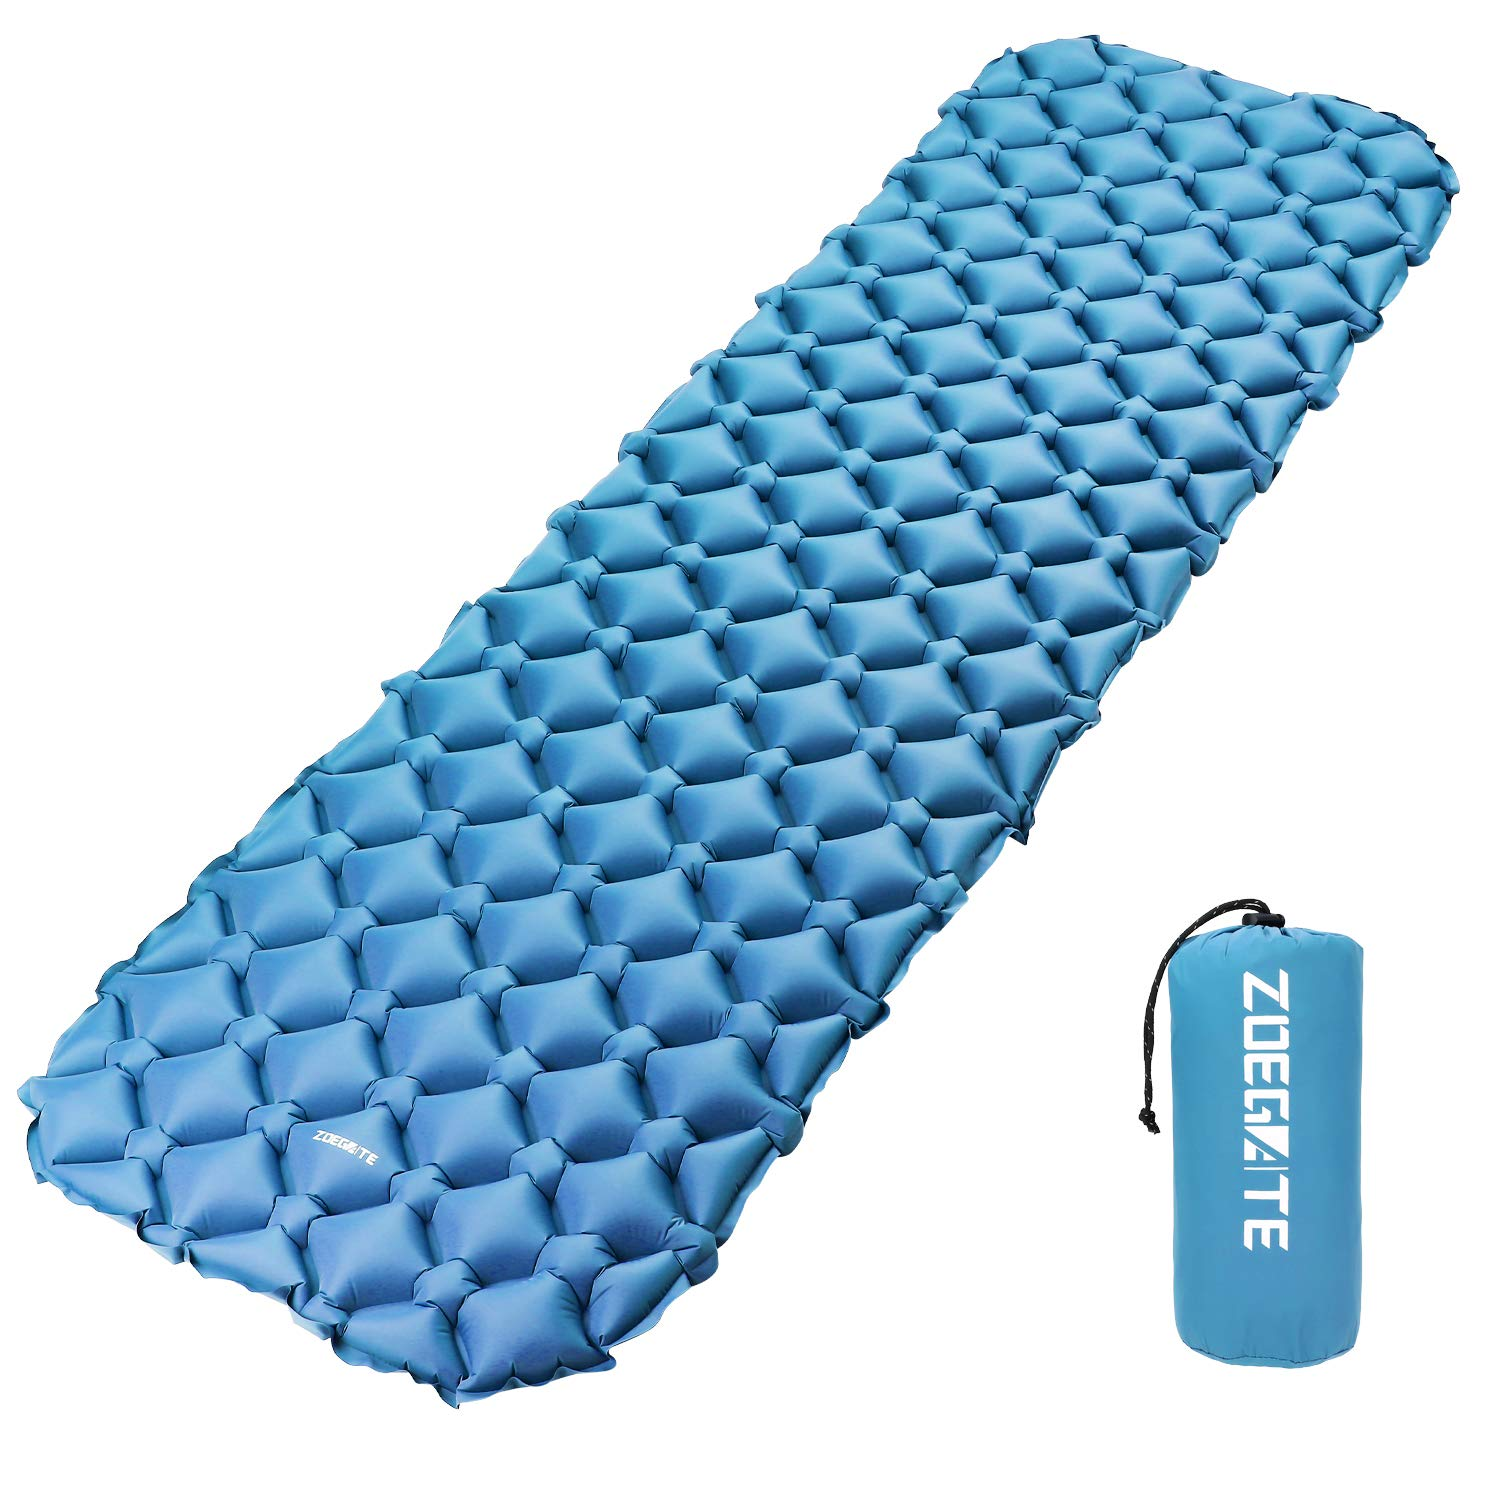 Speedsporting Tapis de Couchage Gonflable, Matelas Camping de Gonflable Tapis de Sol Gonflable, Coussin Gonflable, Coussin d\'air, Matelas de Camping Léger pour Camping Coussin d'air Matelas de Camping Léger pour Camping (Bleu sans oreillers)